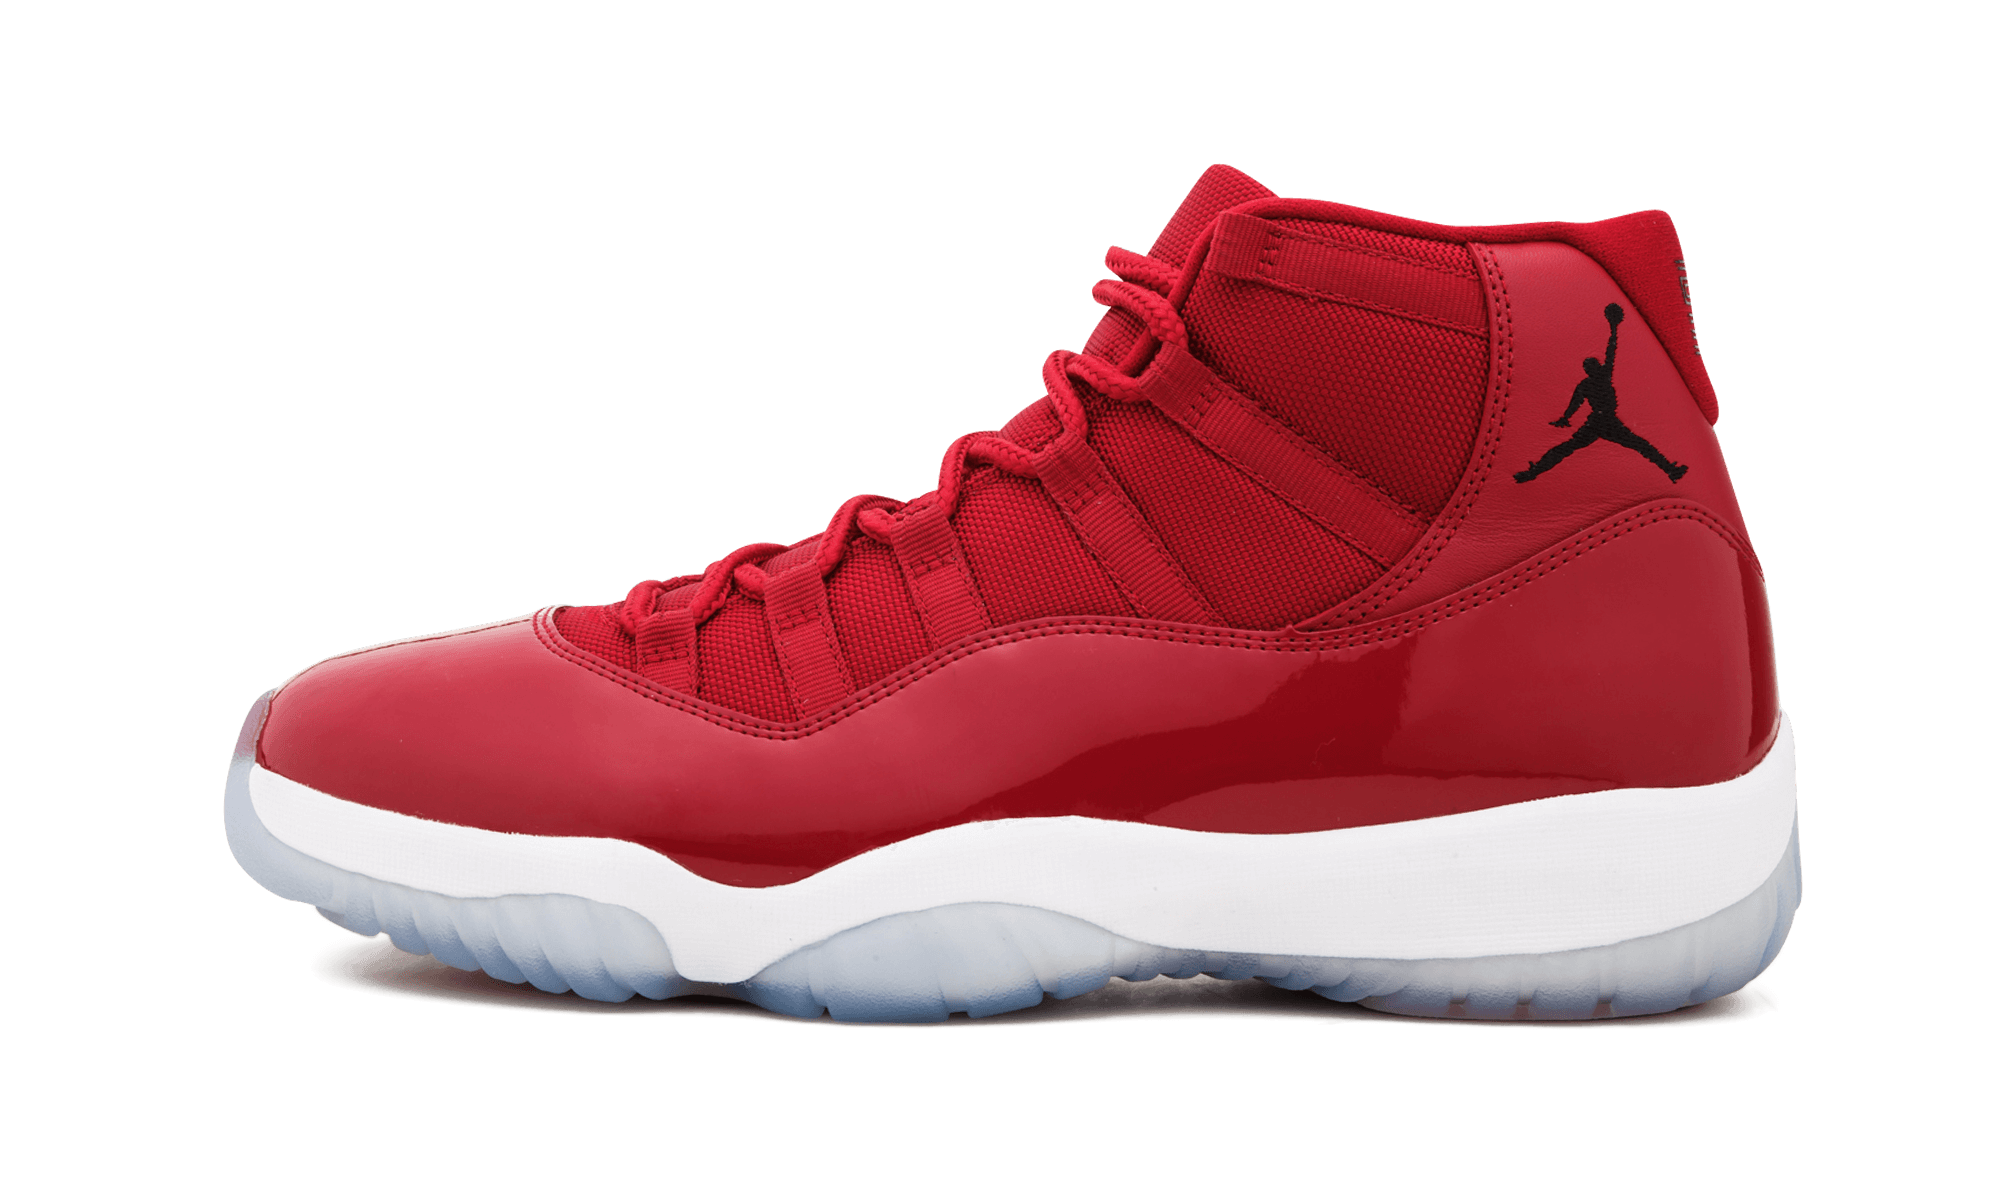 bb75a8bcebc After the maroon velvet edition dropped during the 2016 holiday season, the  premium Air Jordan 11 Heiress for women was back in 2017 for another ...